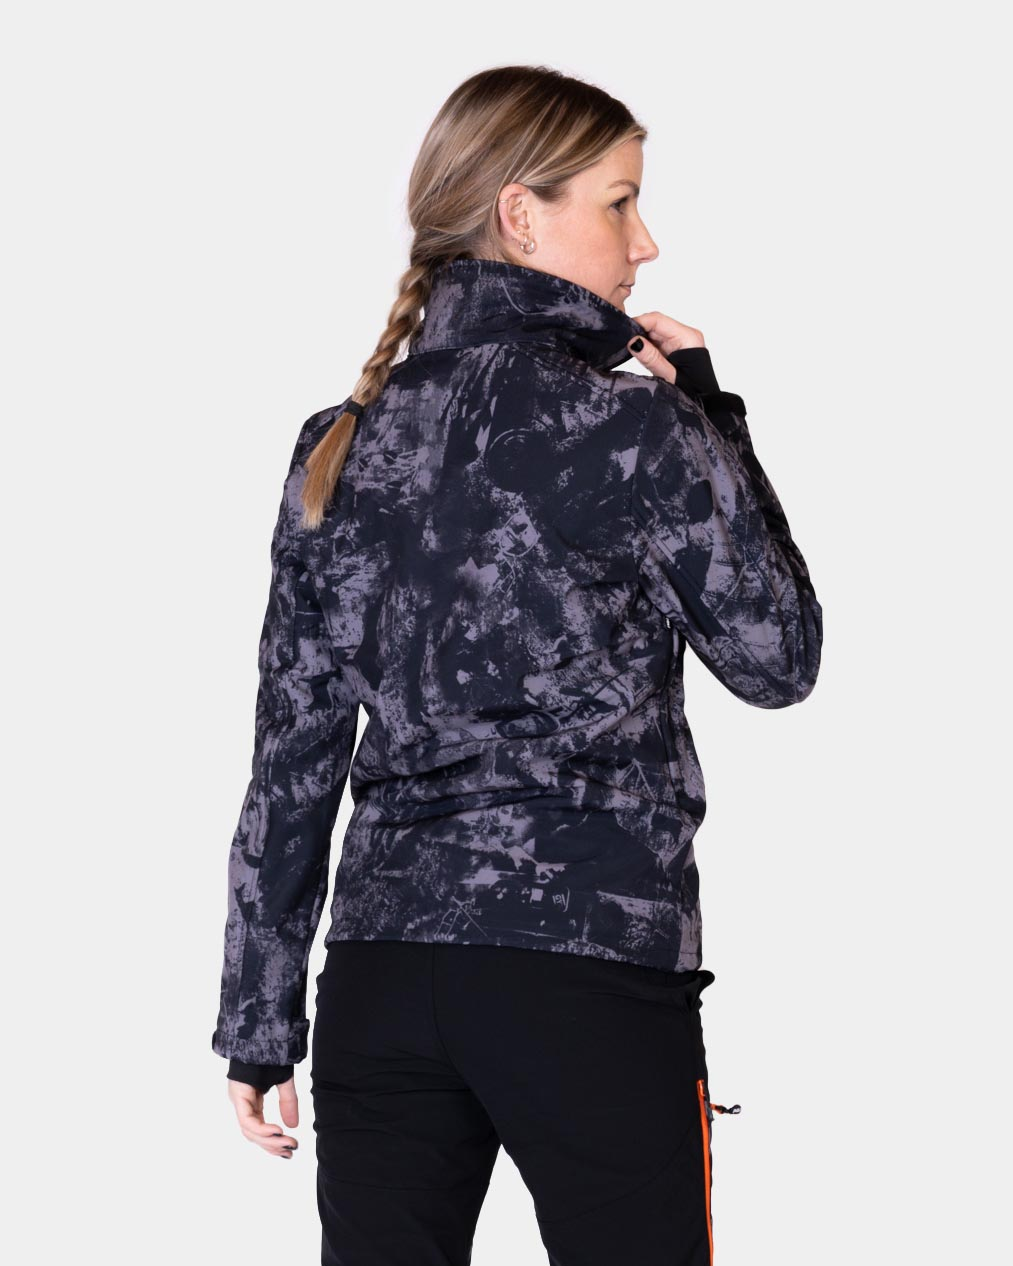 P4H Supreme Jacket, Black Camo, Dam